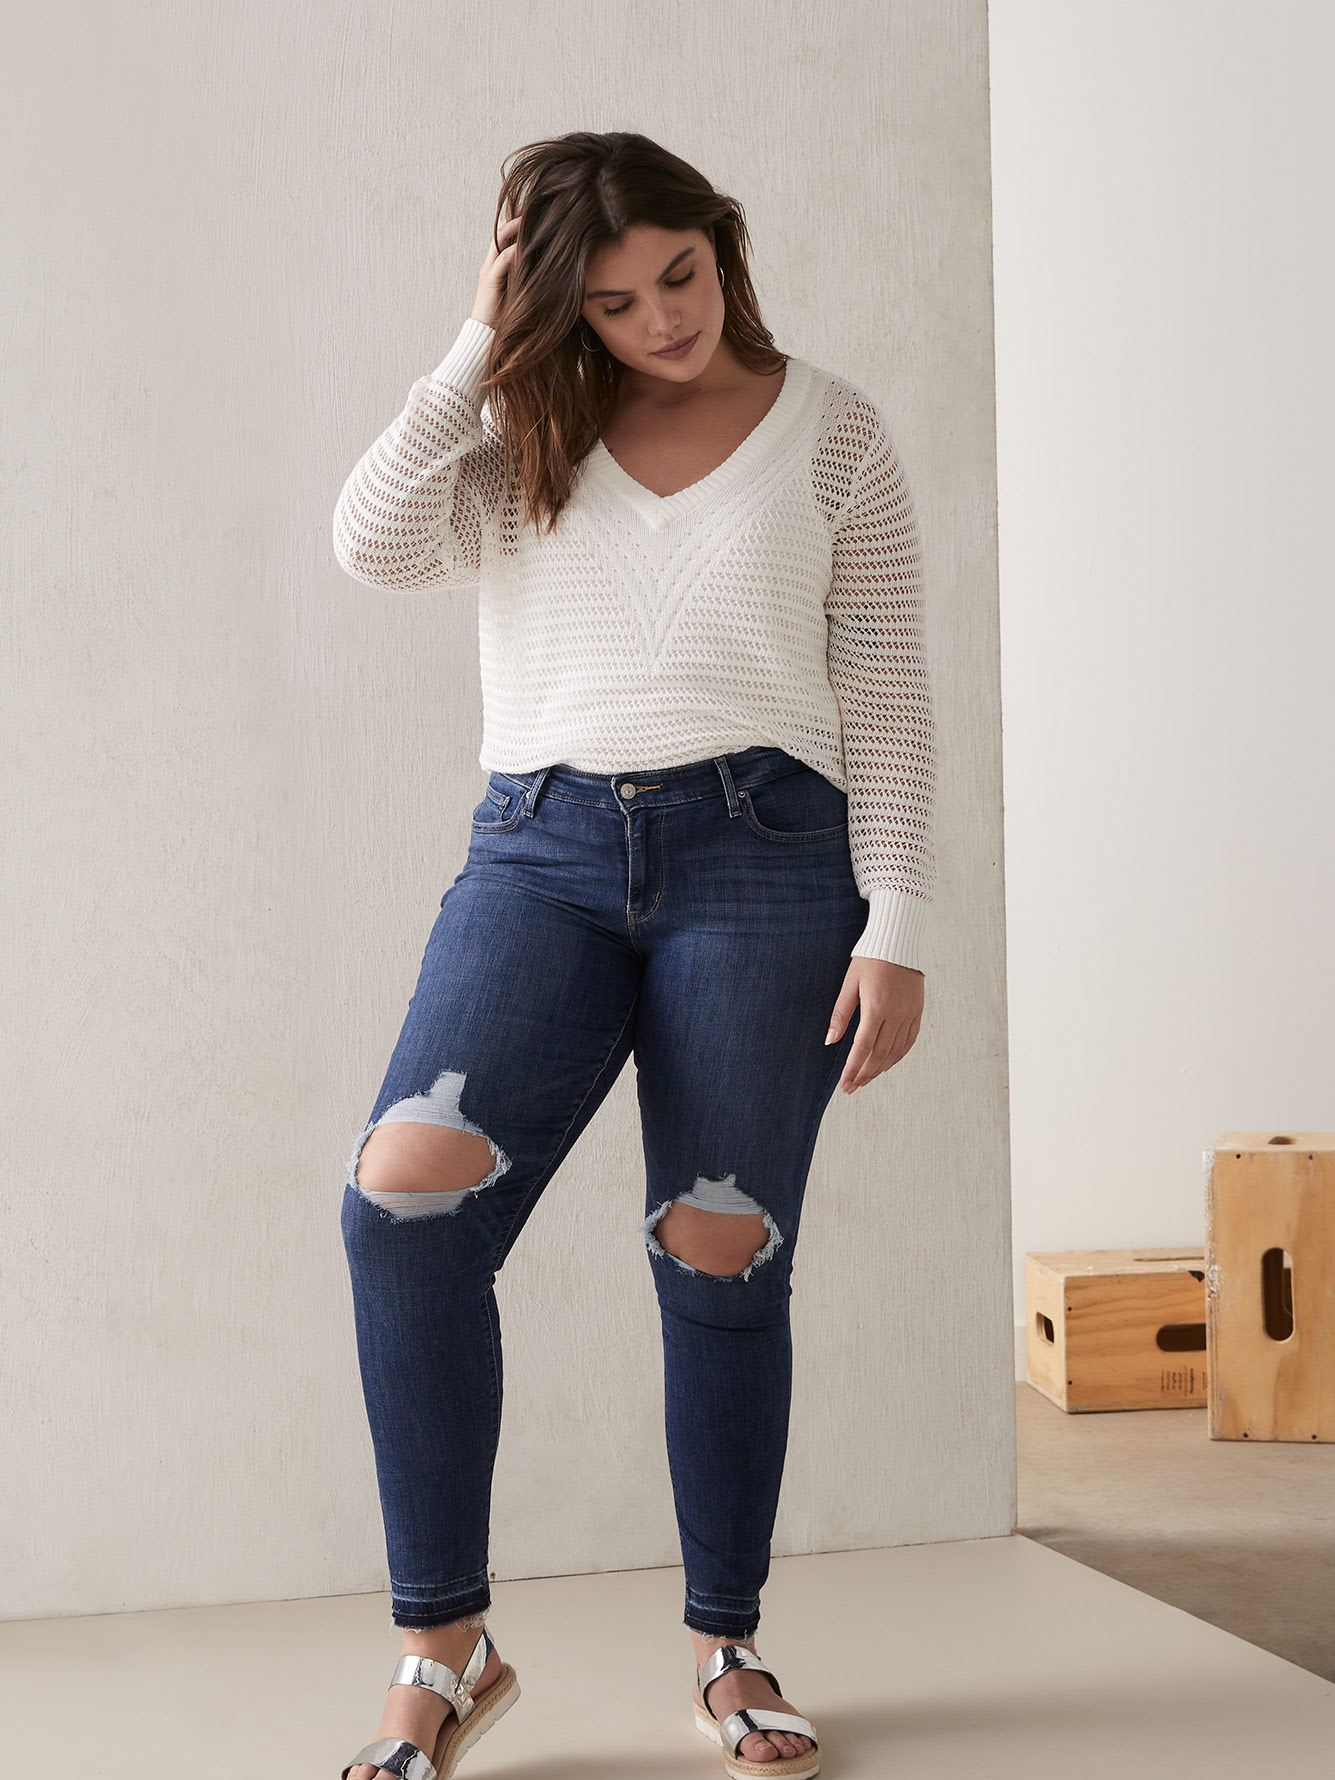 Levi's 711 Skinny Jean with Hem Detail